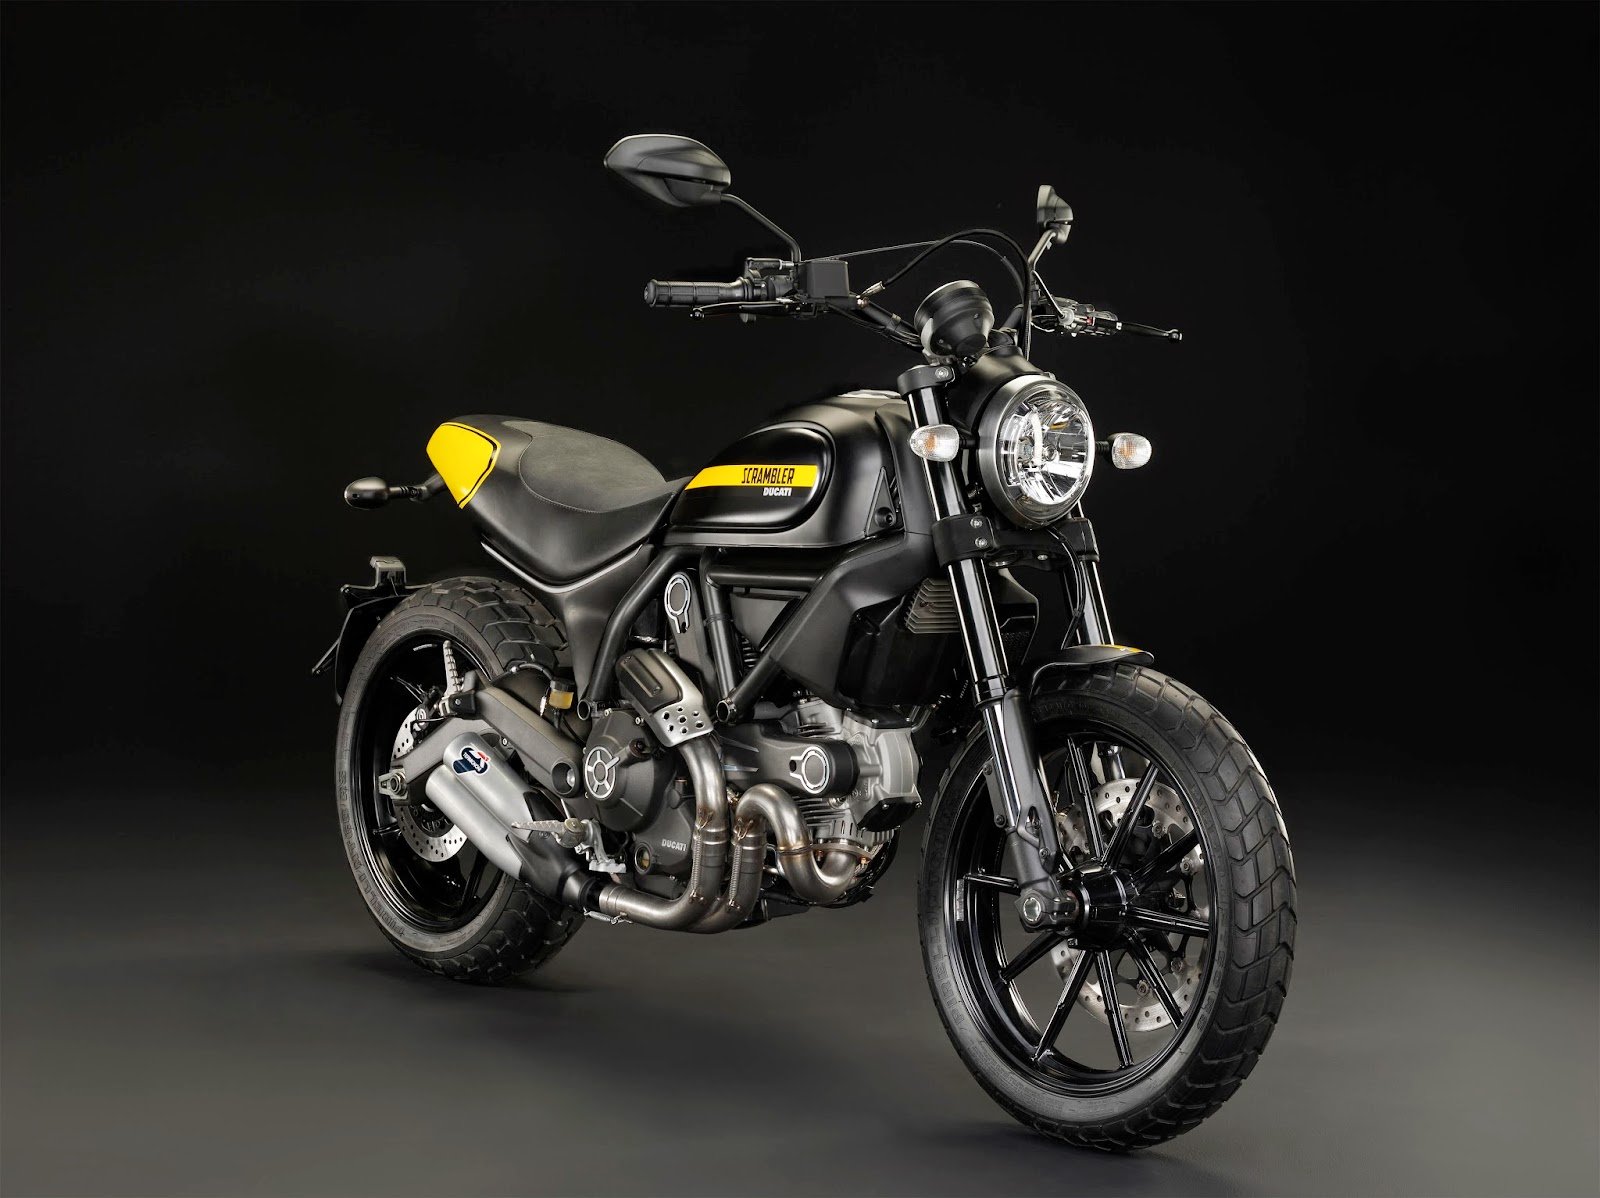 //Strada 2013 //AMG Cromo 2012 Xdiavel//S Alina-Shops Front Brake Clutch Reservoir Covers Caps for Ducati Diavel Carbon 2012